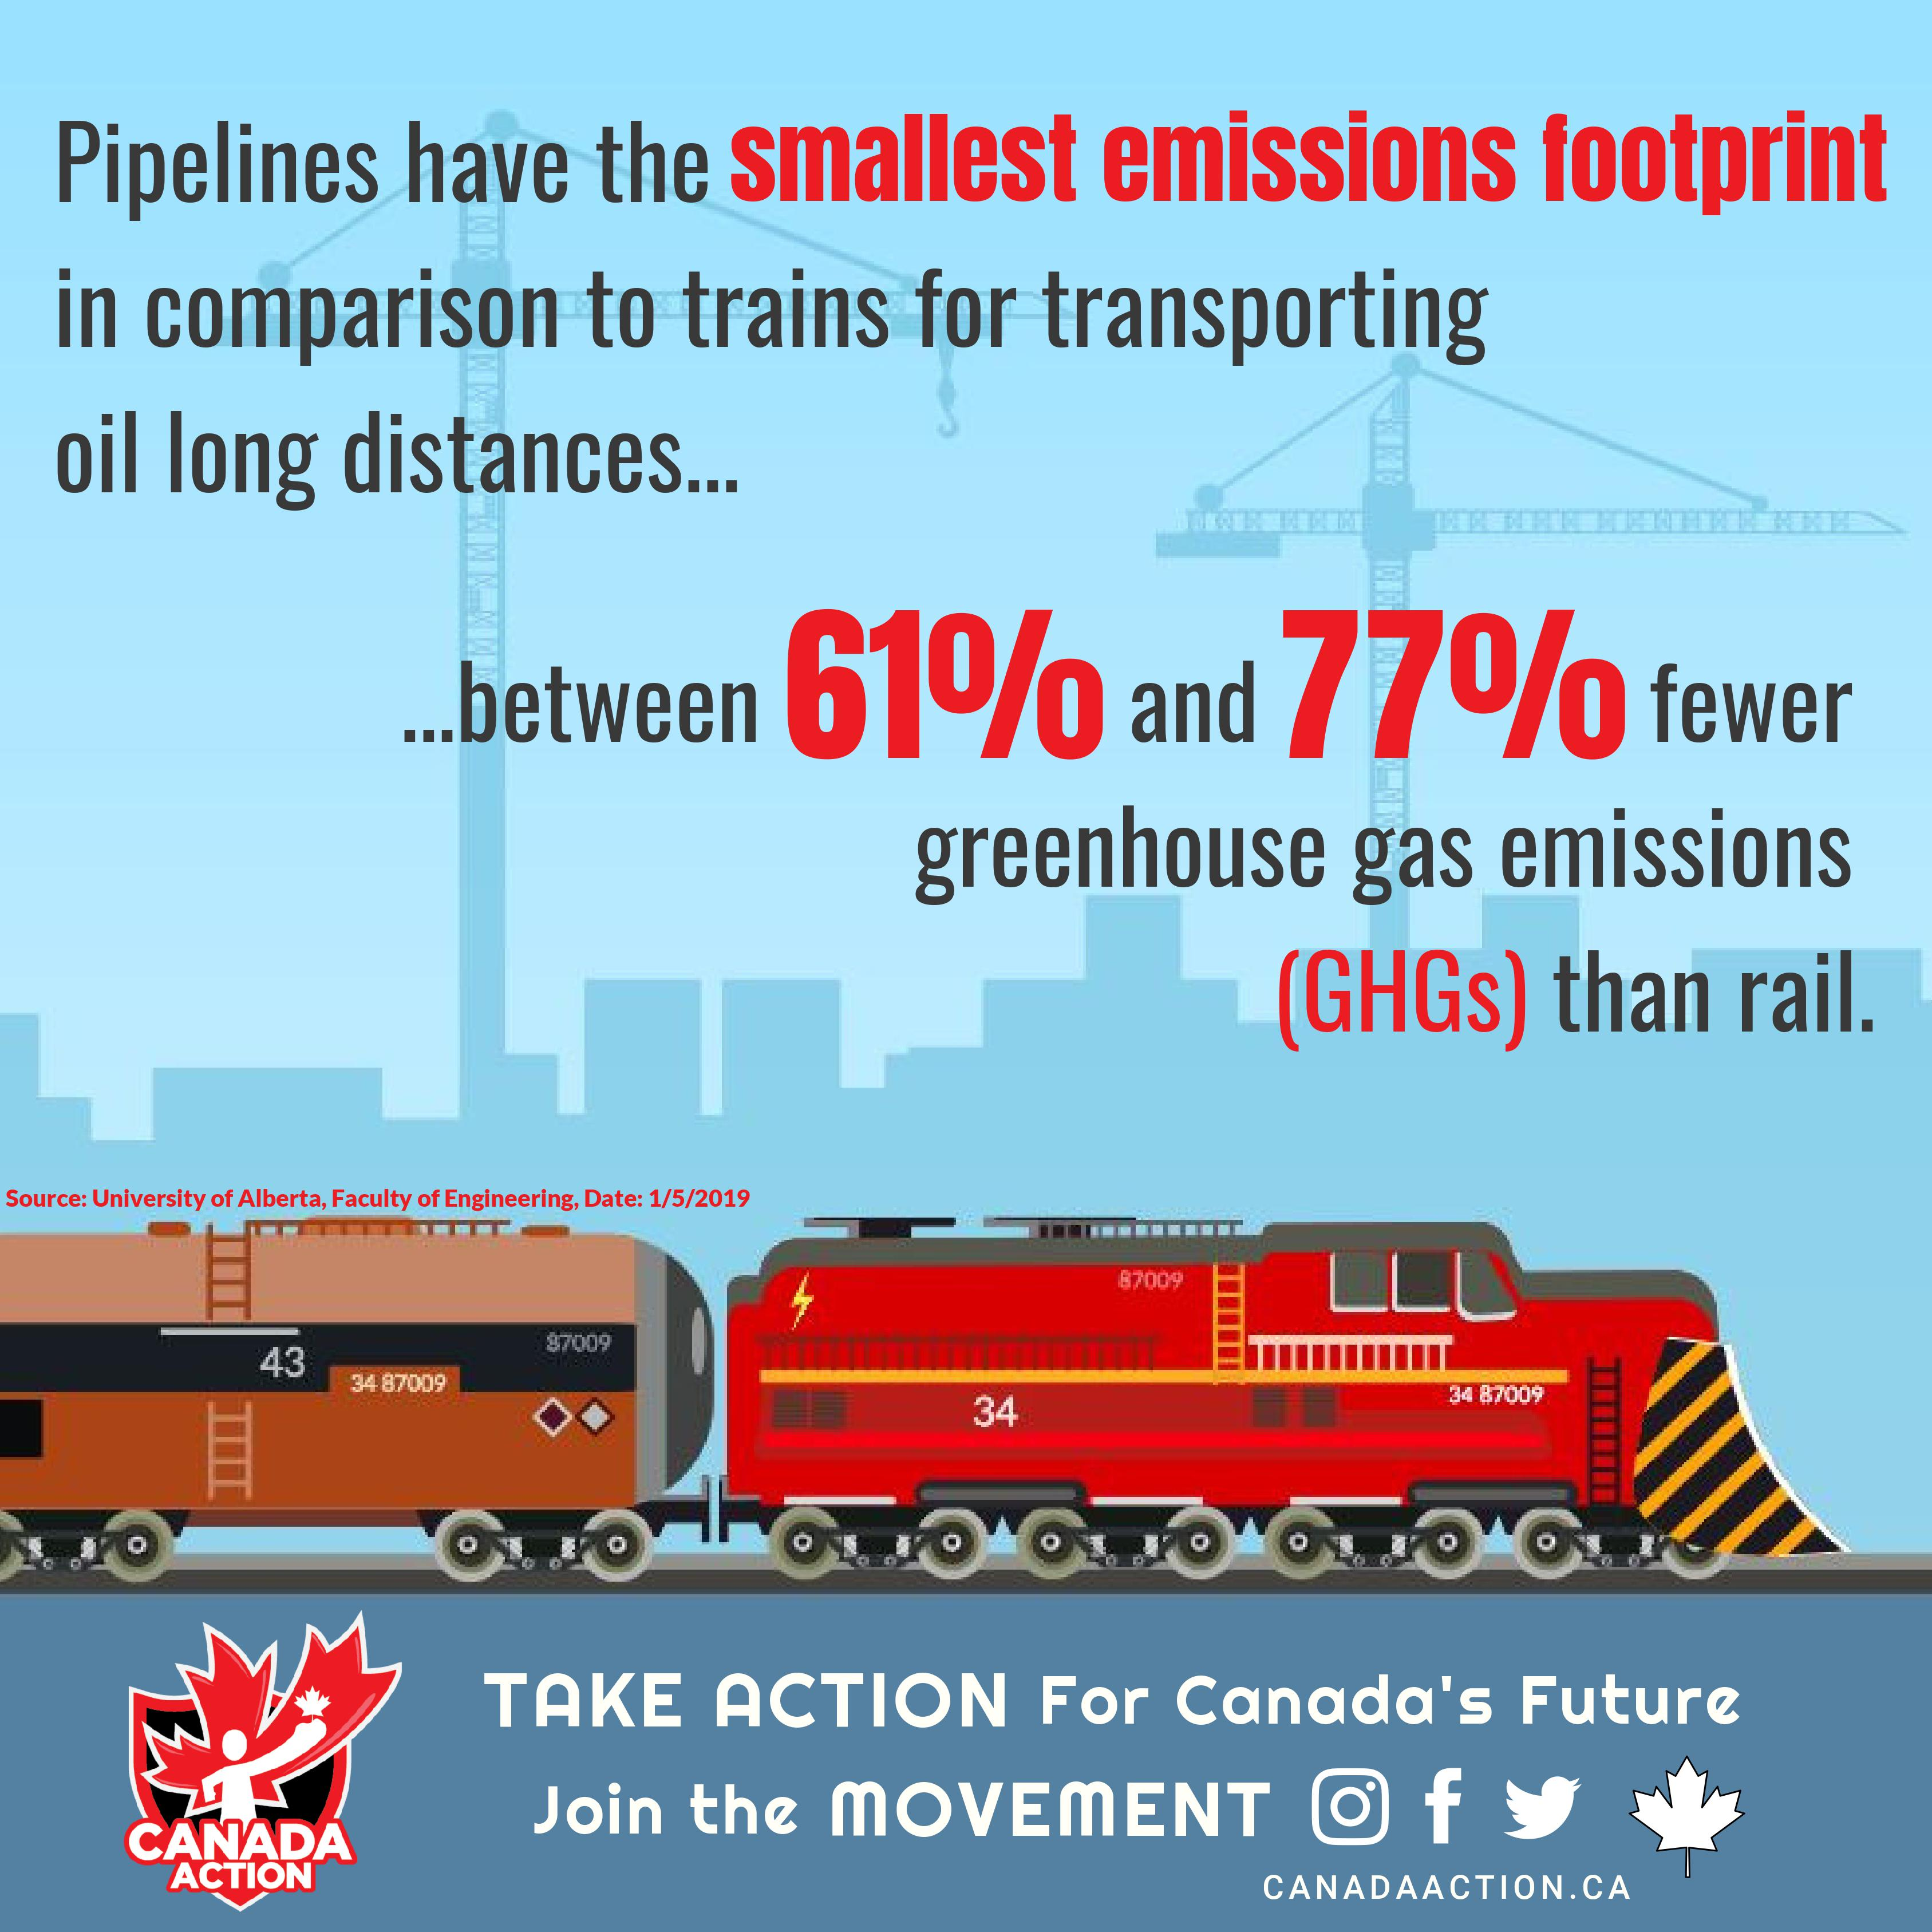 oil by rail is much more environmentally harmful than oil by pipeline